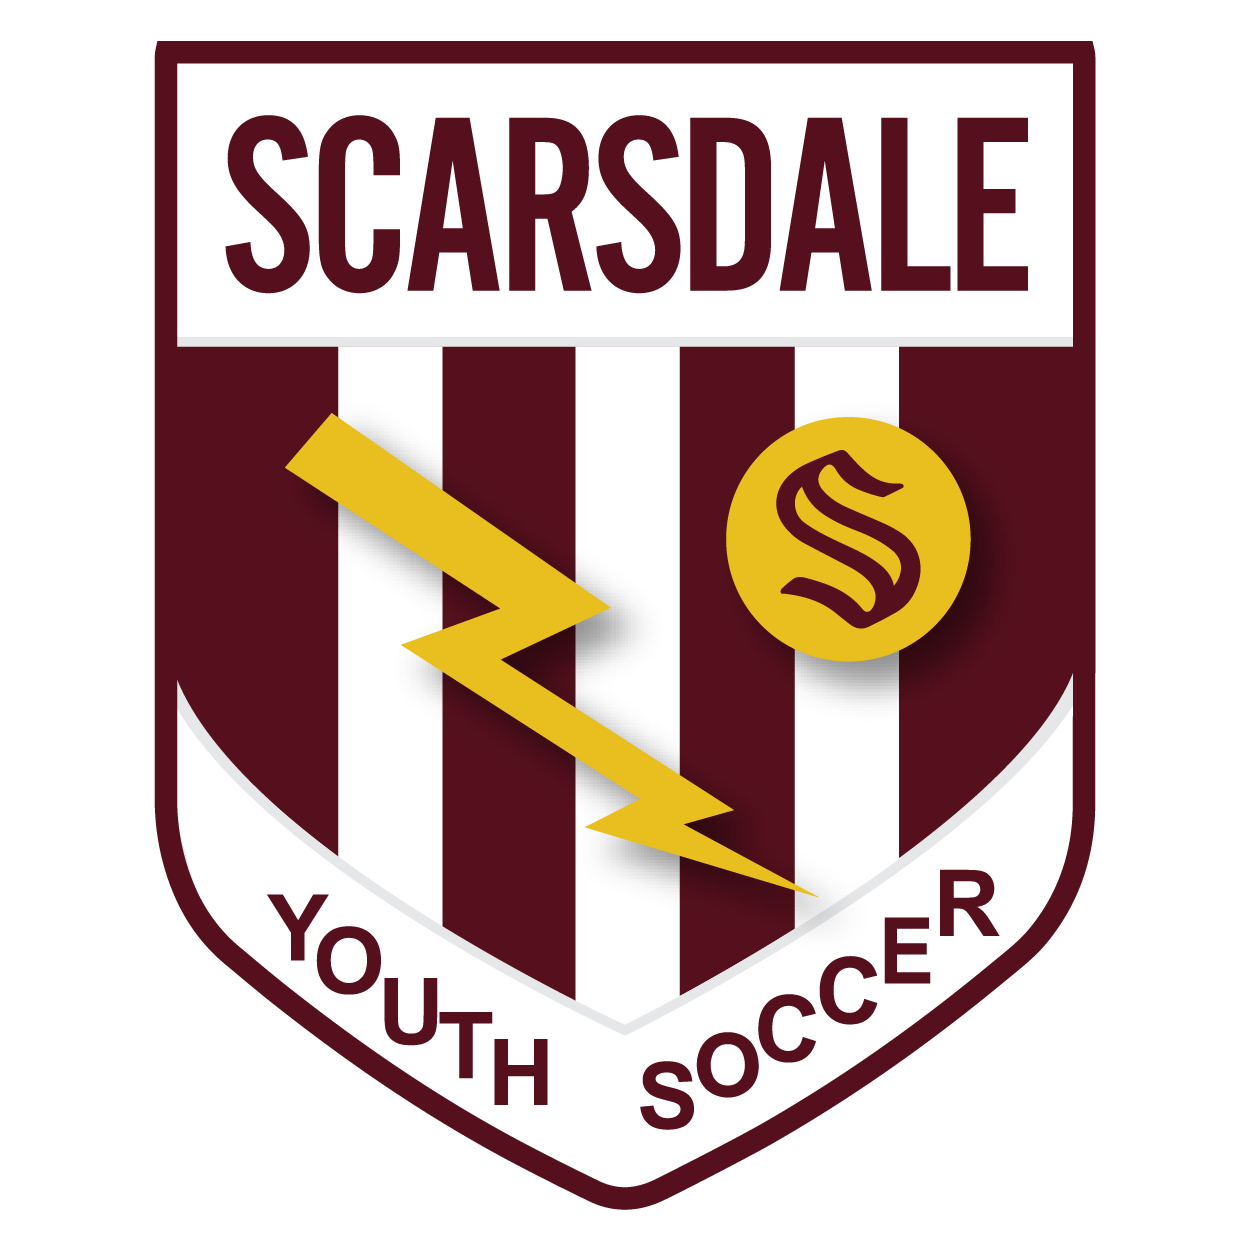 Scarsdale Youth Soccer Club